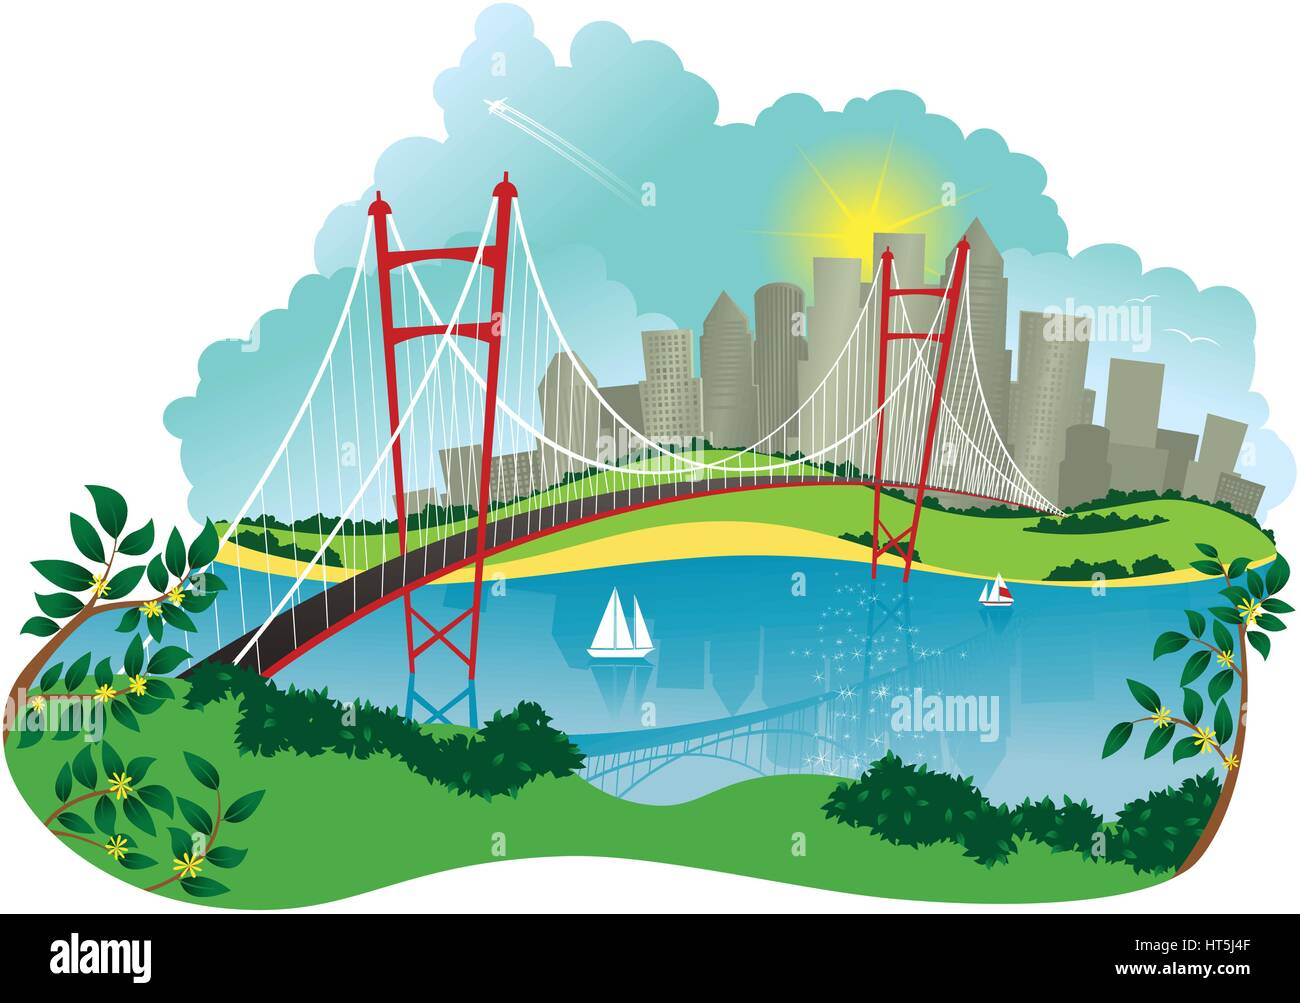 An image of a suspension bridge spanning a large river, and city in the background. - Stock Vector